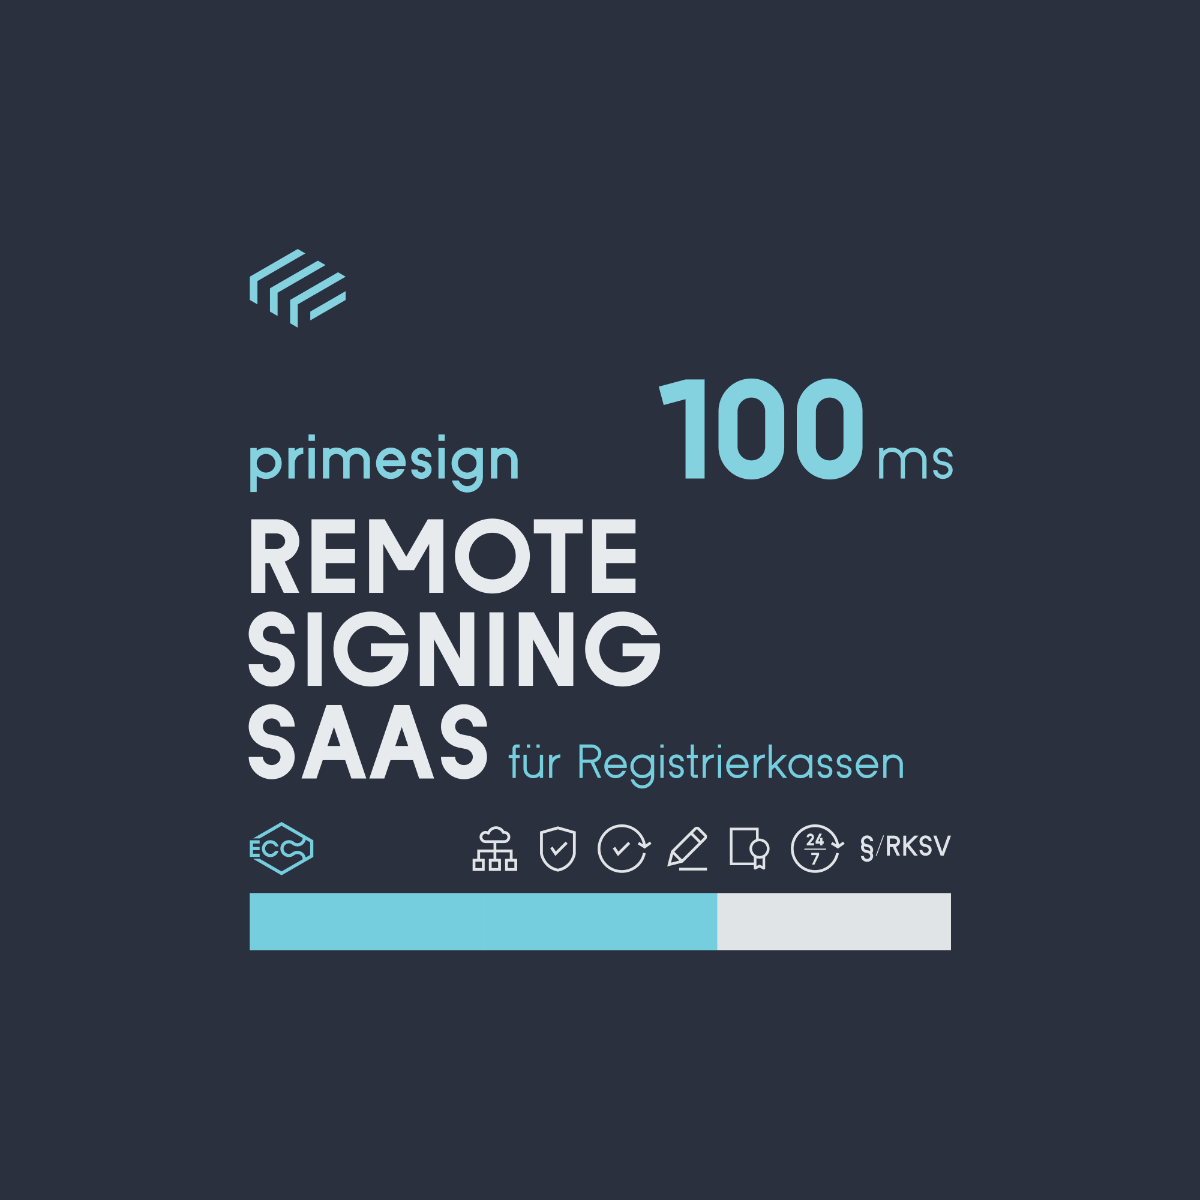 RKSV Remote Signing 100 ms mit 24/7 Support